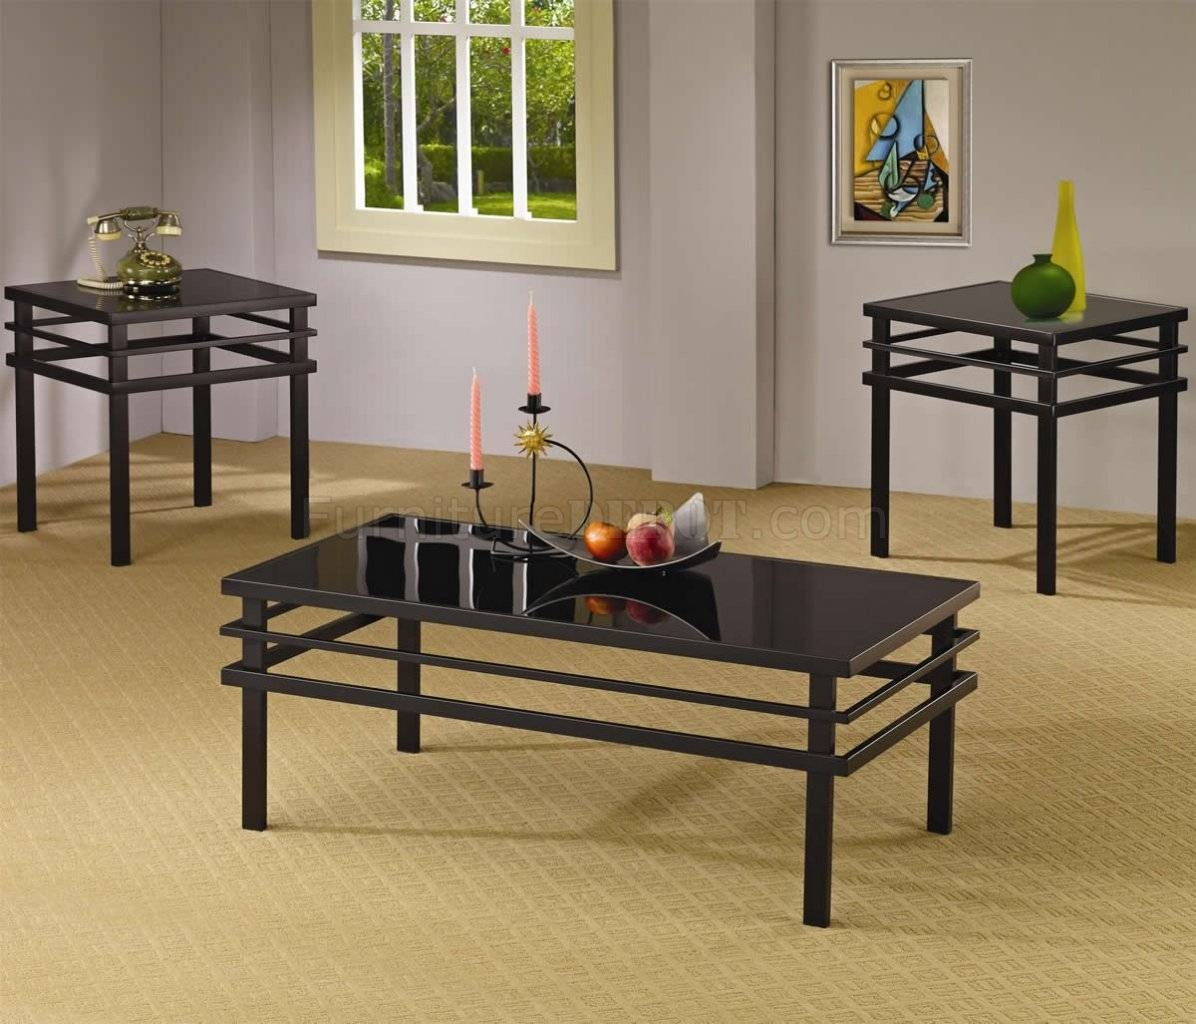 Black Metal Base & Glass Top Modern 3Pc Coffee Table Set for Glass And Black Metal Coffee Table (Image 2 of 15)